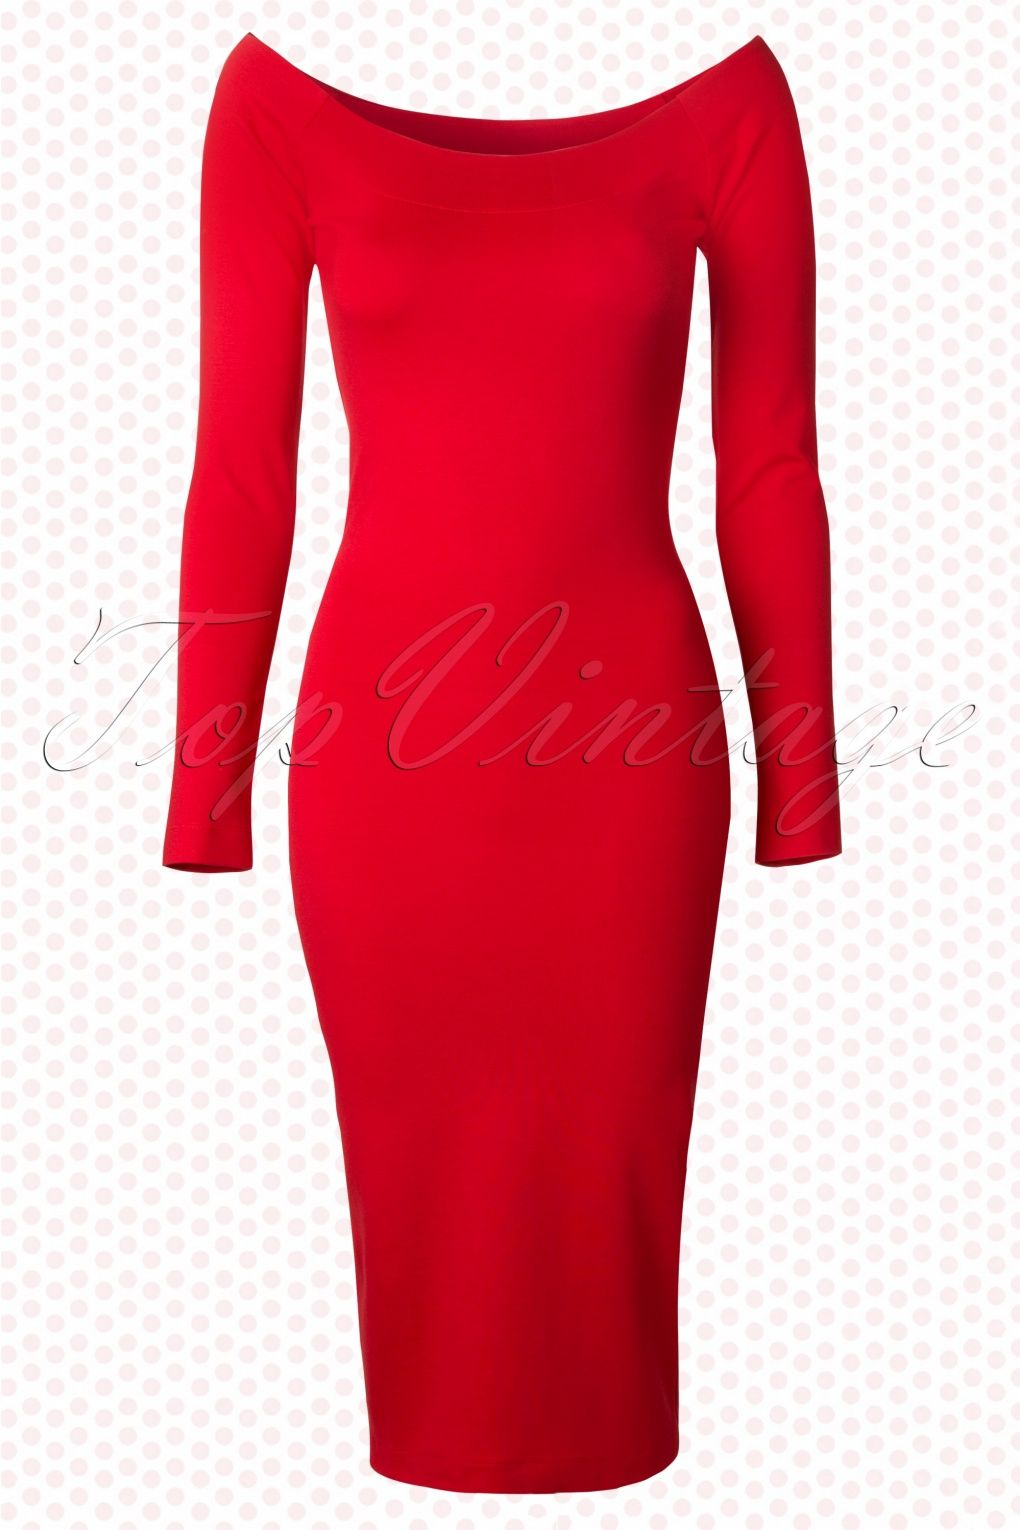 Hotrod Hussy - TopVintage exclusive ~ 50s Moira Pencil Dress in Red